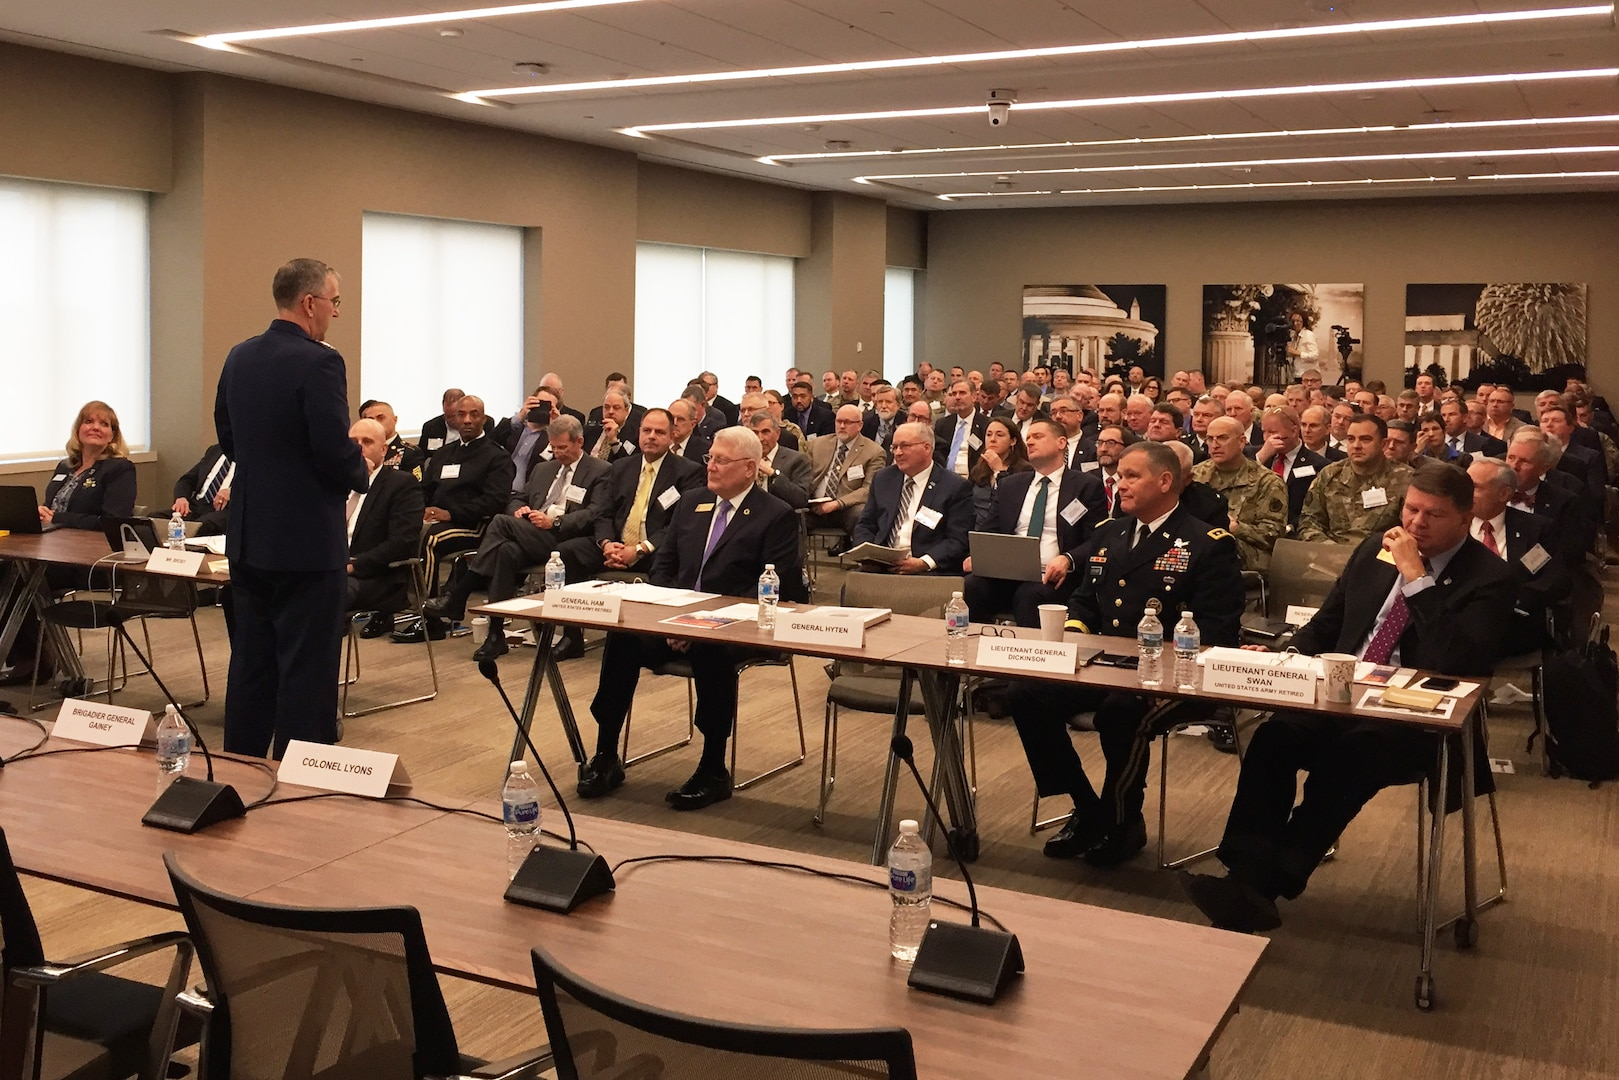 U.S. Air Force Gen. John Hyten, commander of U.S. Strategic Command, addresses an Association of the United States Army discussion on Army air and missile defense in Arlington, Va., Feb. 28, 2018.